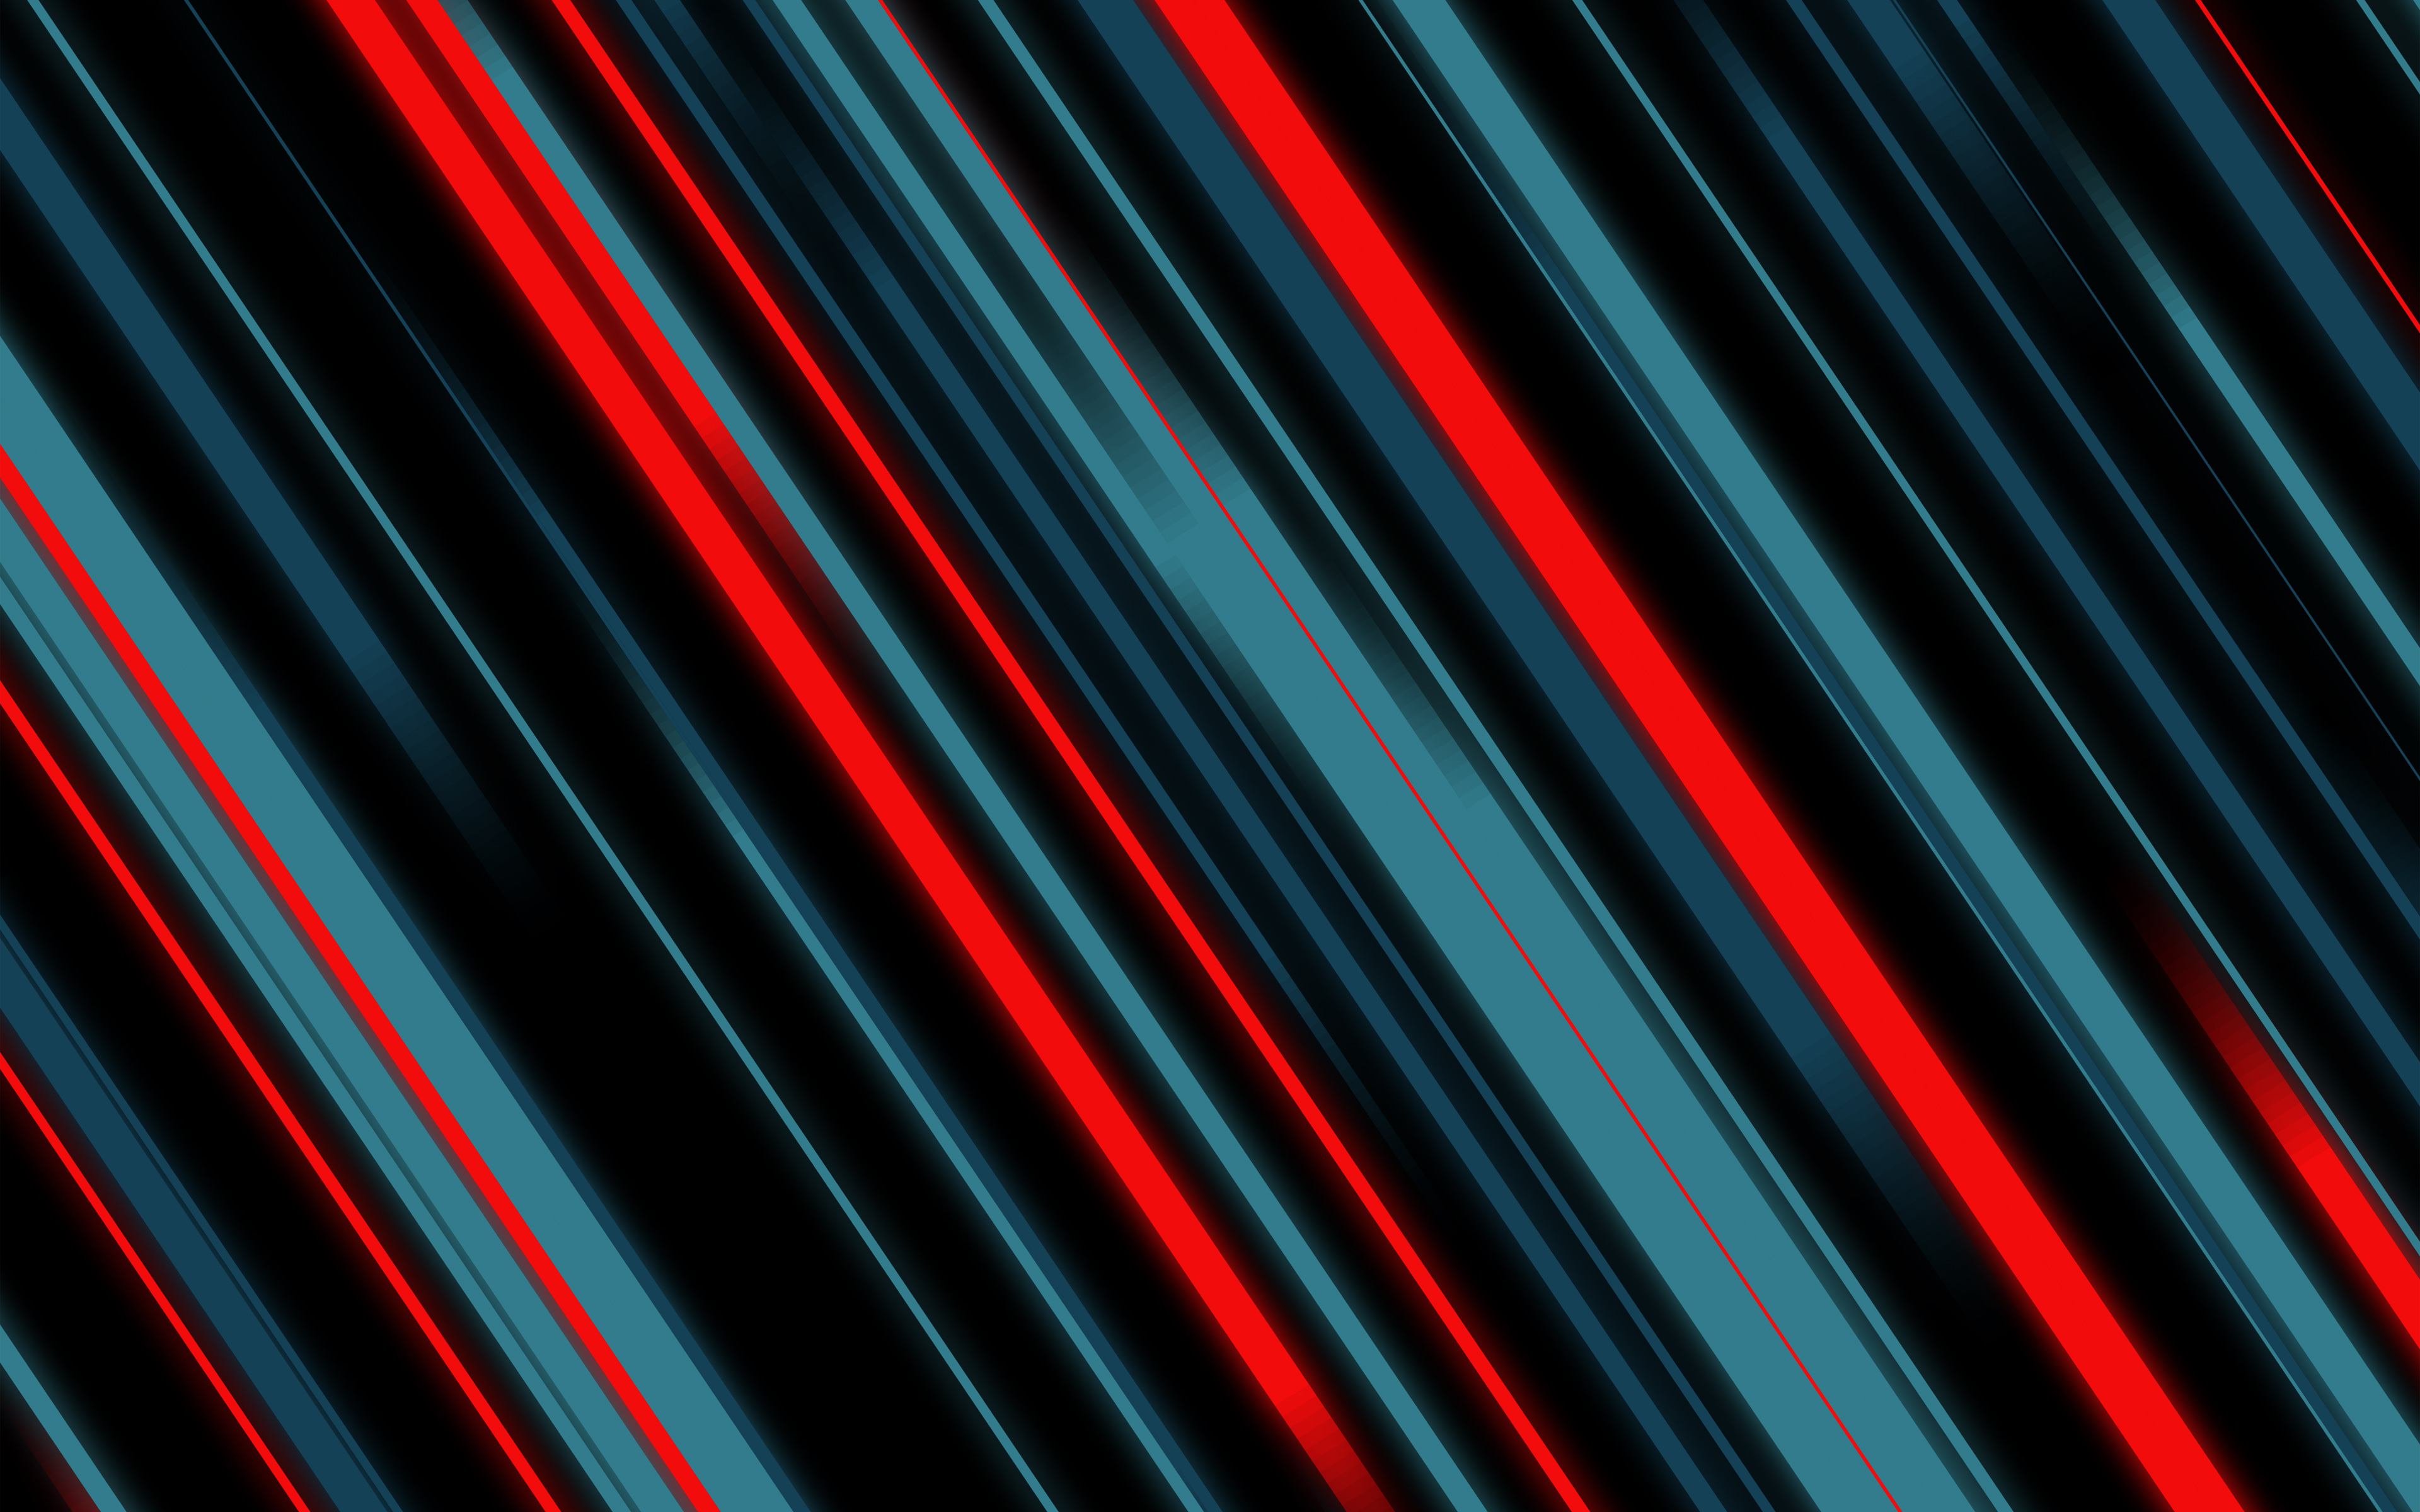 Download Wallpapers 4k Lines Strips Creative Material Smartphone Wallpaper 4k Abstract 3840x2400 Download Hd Wallpaper Wallpapertip